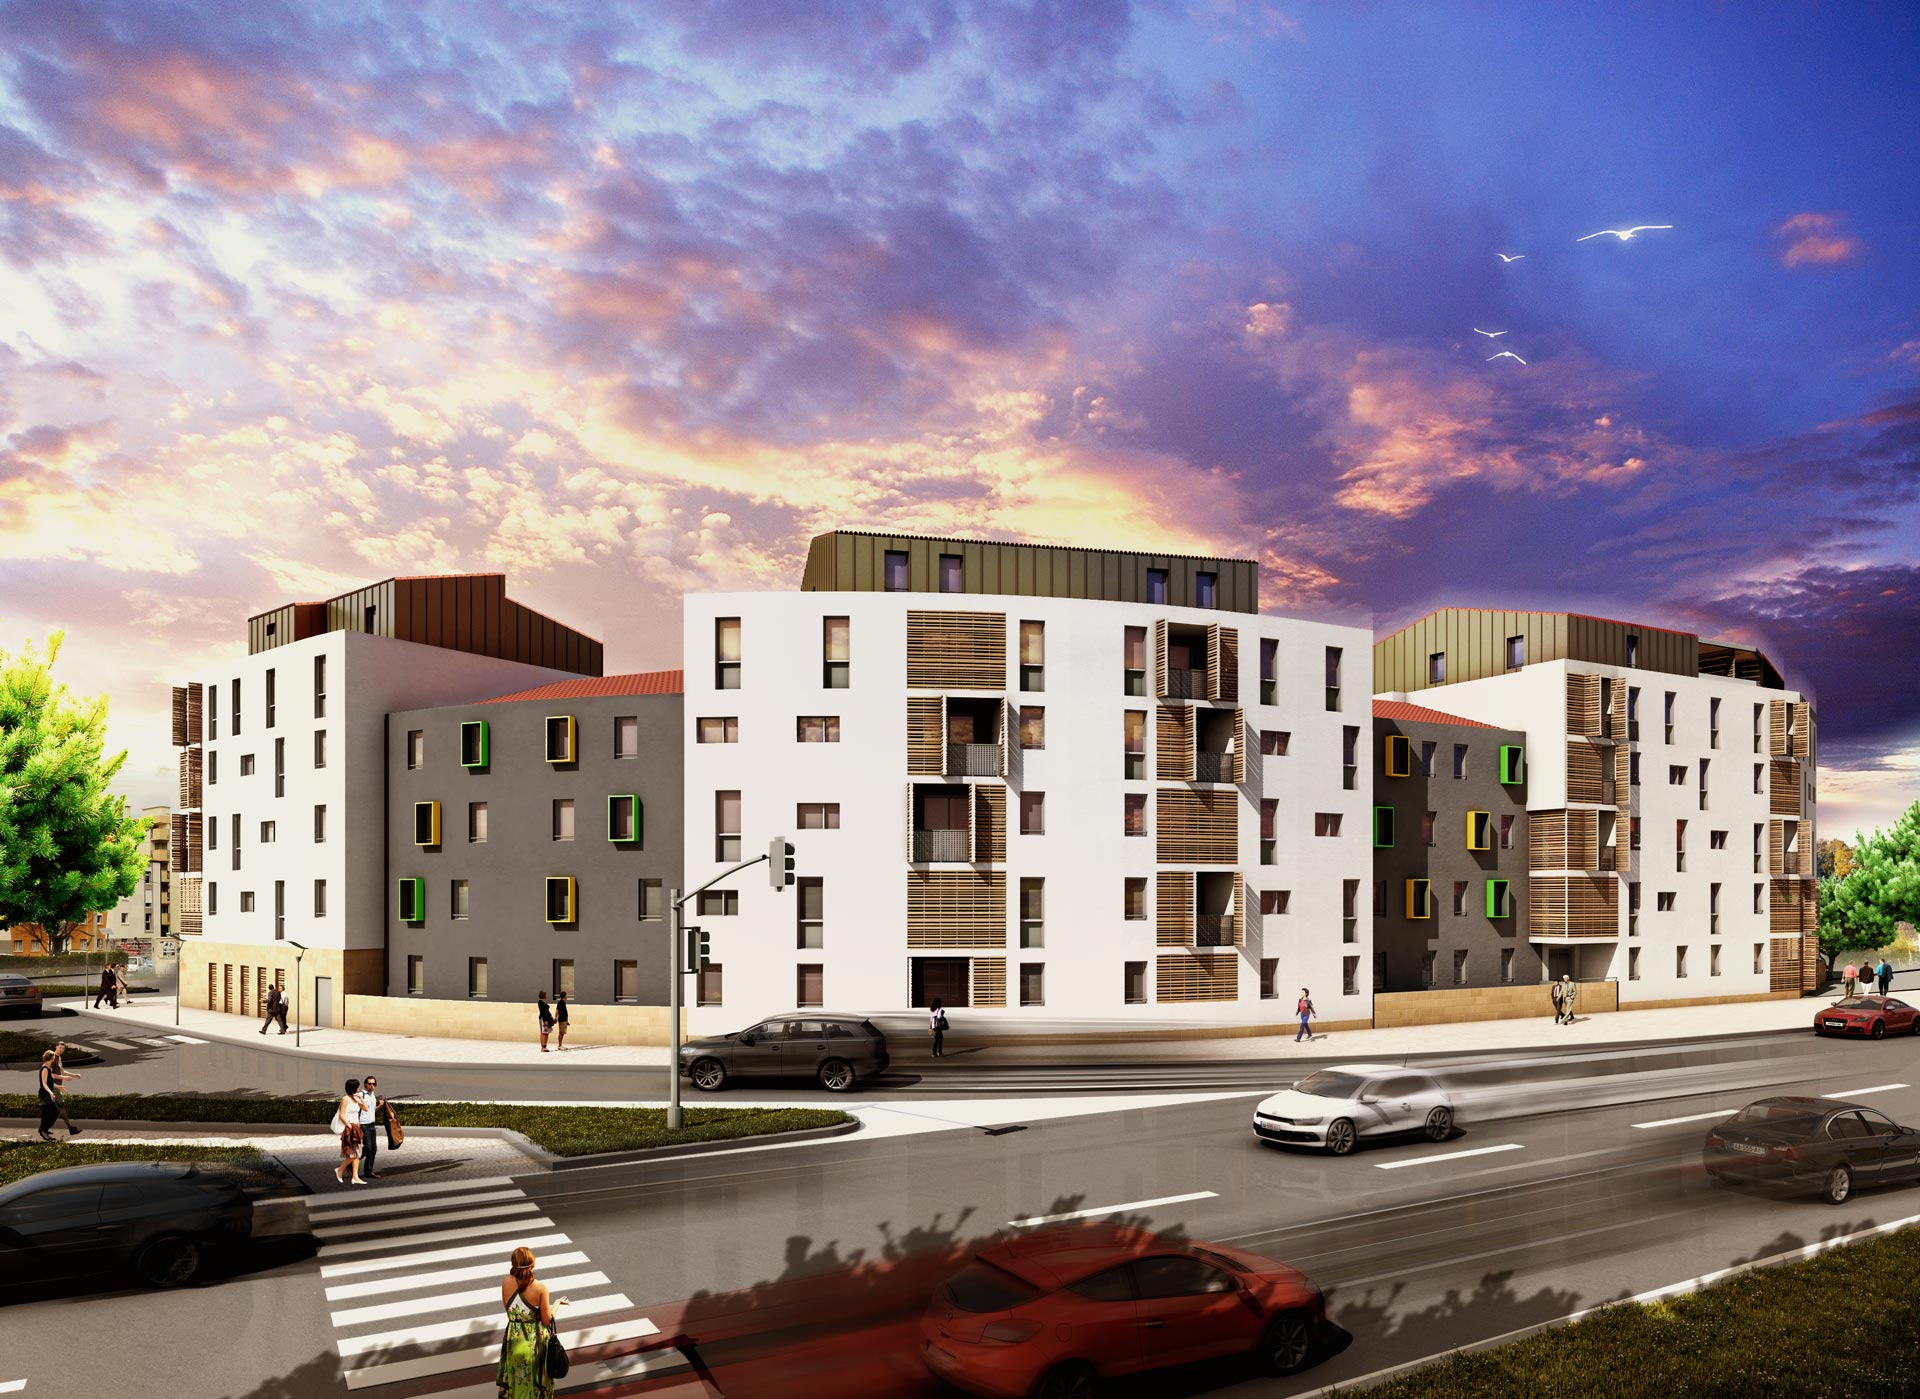 Logements collectifs la feuillade montpellier 34 for Agence d architecture montpellier